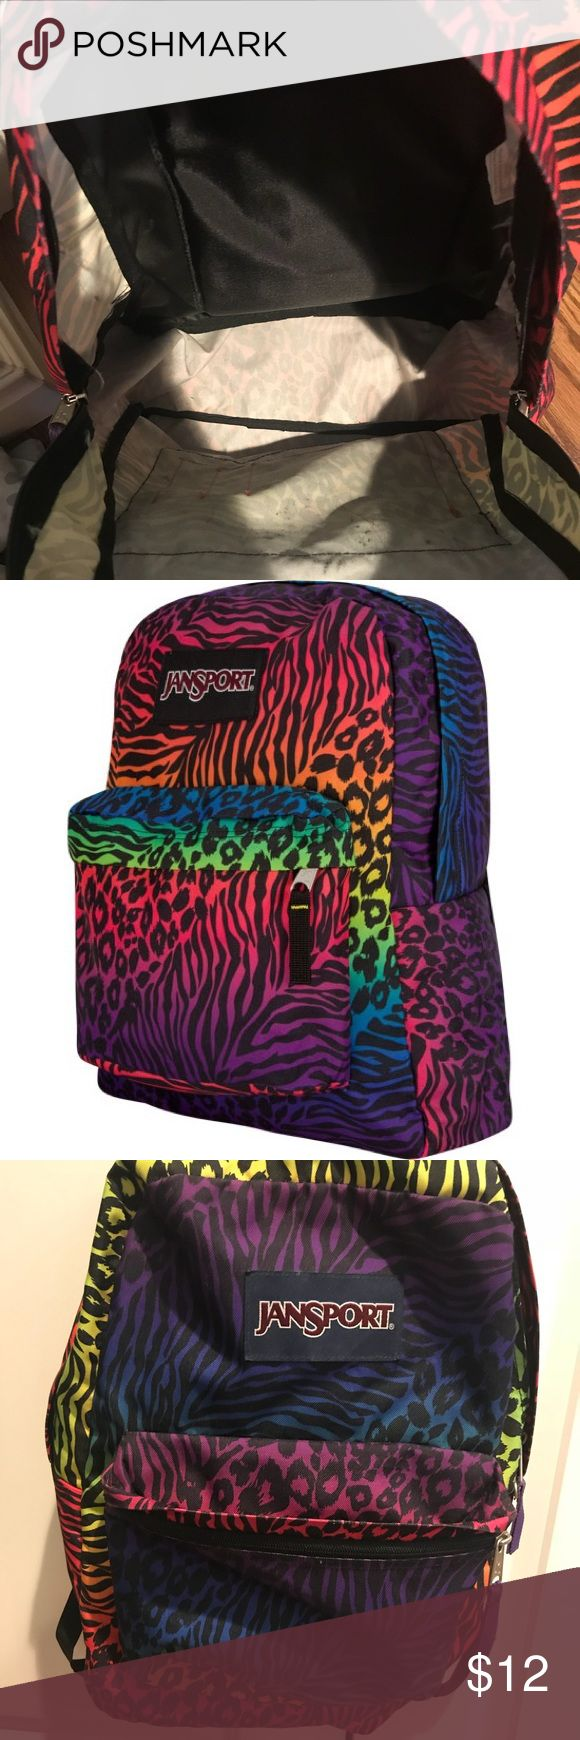 Jansport Colorful Animal Print Backpack •Adult Size Backpack •Zippers work, inside of bag shows signs of use. But otherwise great condition. •Willing to negotiate price Jansport Bags Backpacks